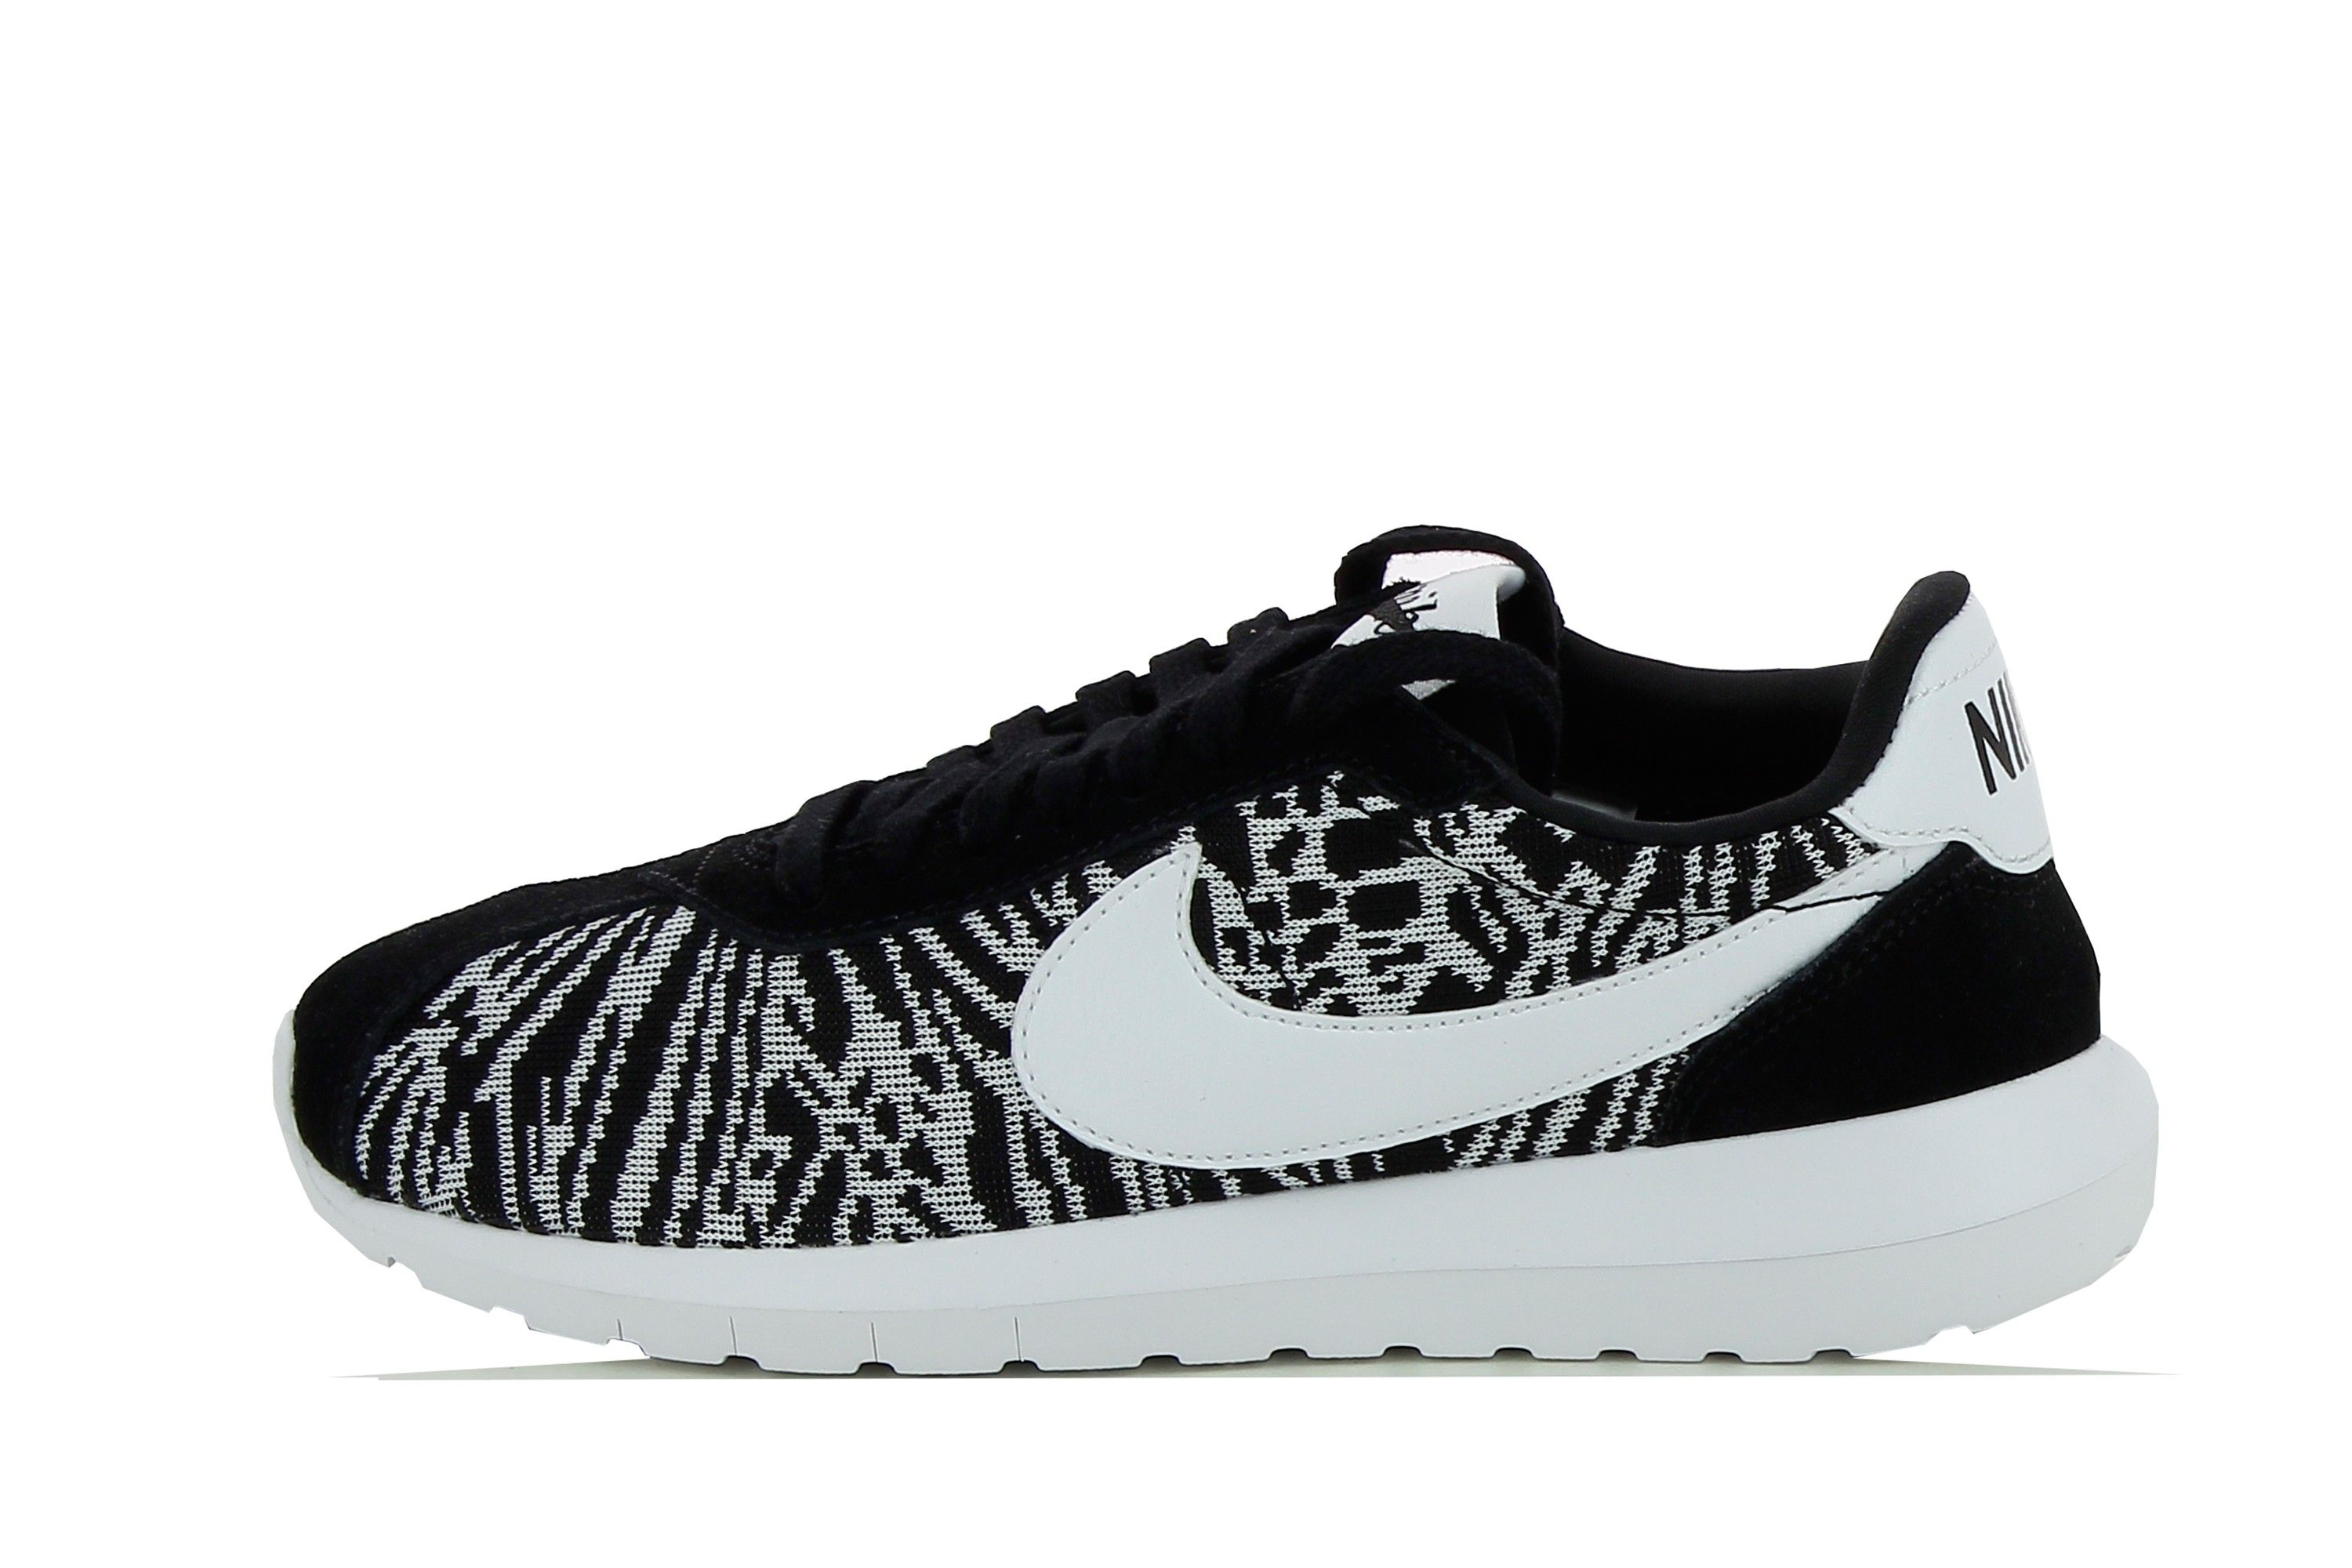 separation shoes aea42 7e83e Basket Nike Roshe LD1000 Jacquard - 819845-001 - Pegashoes